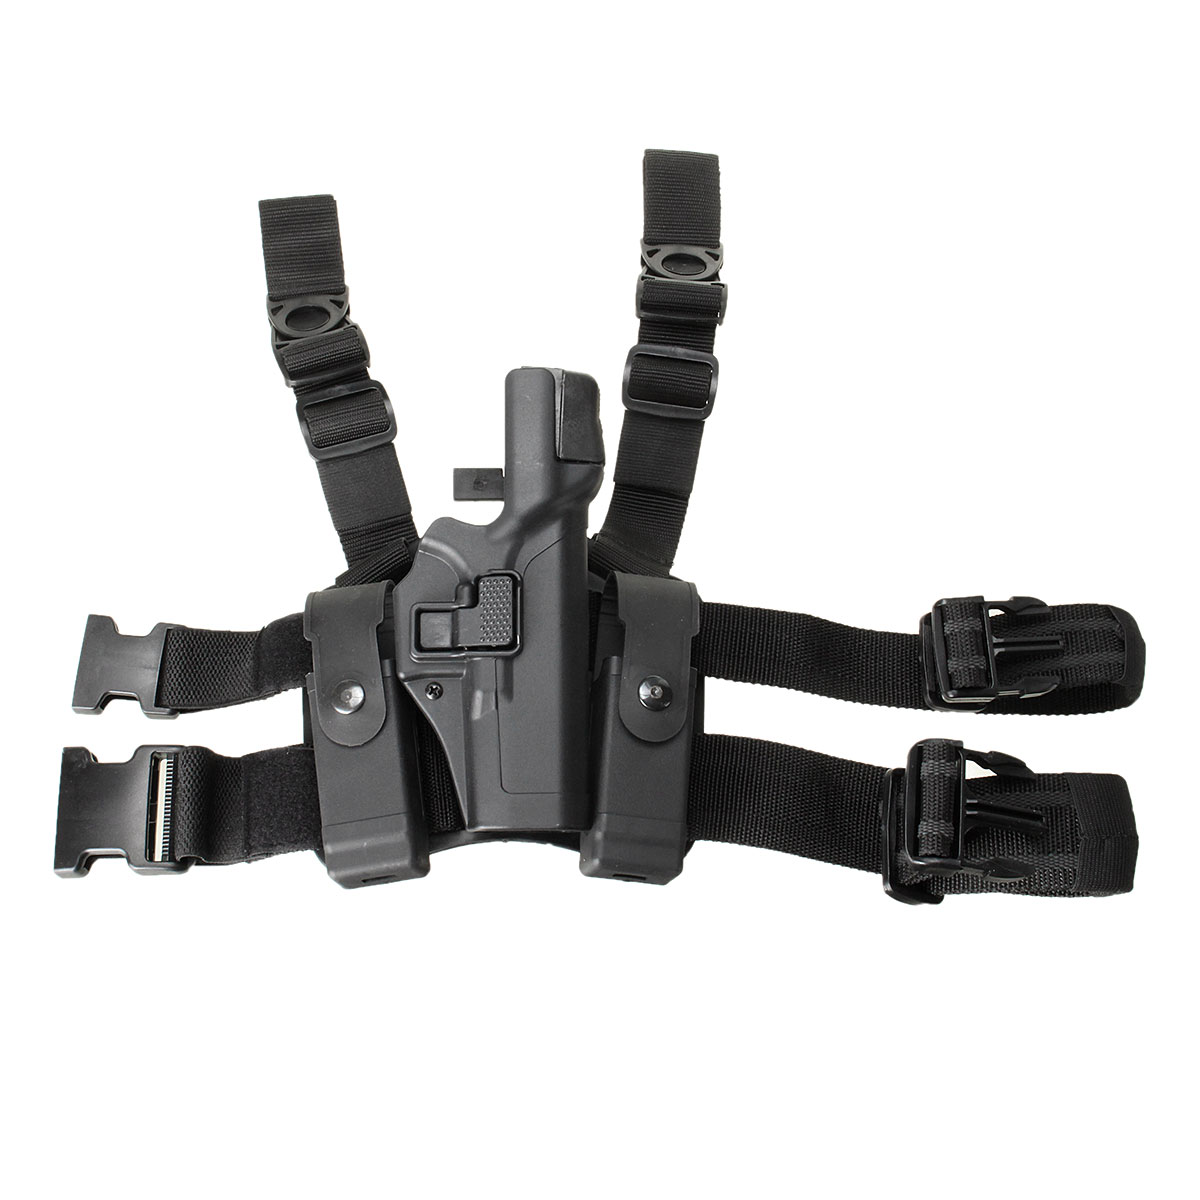 ФОТО Tactical Right Drop Leg Thigh Level 3 Lock Duty Pistol Holster 17 19 22 Tactical Military Airsoft Pistol Gun Thigh Holster